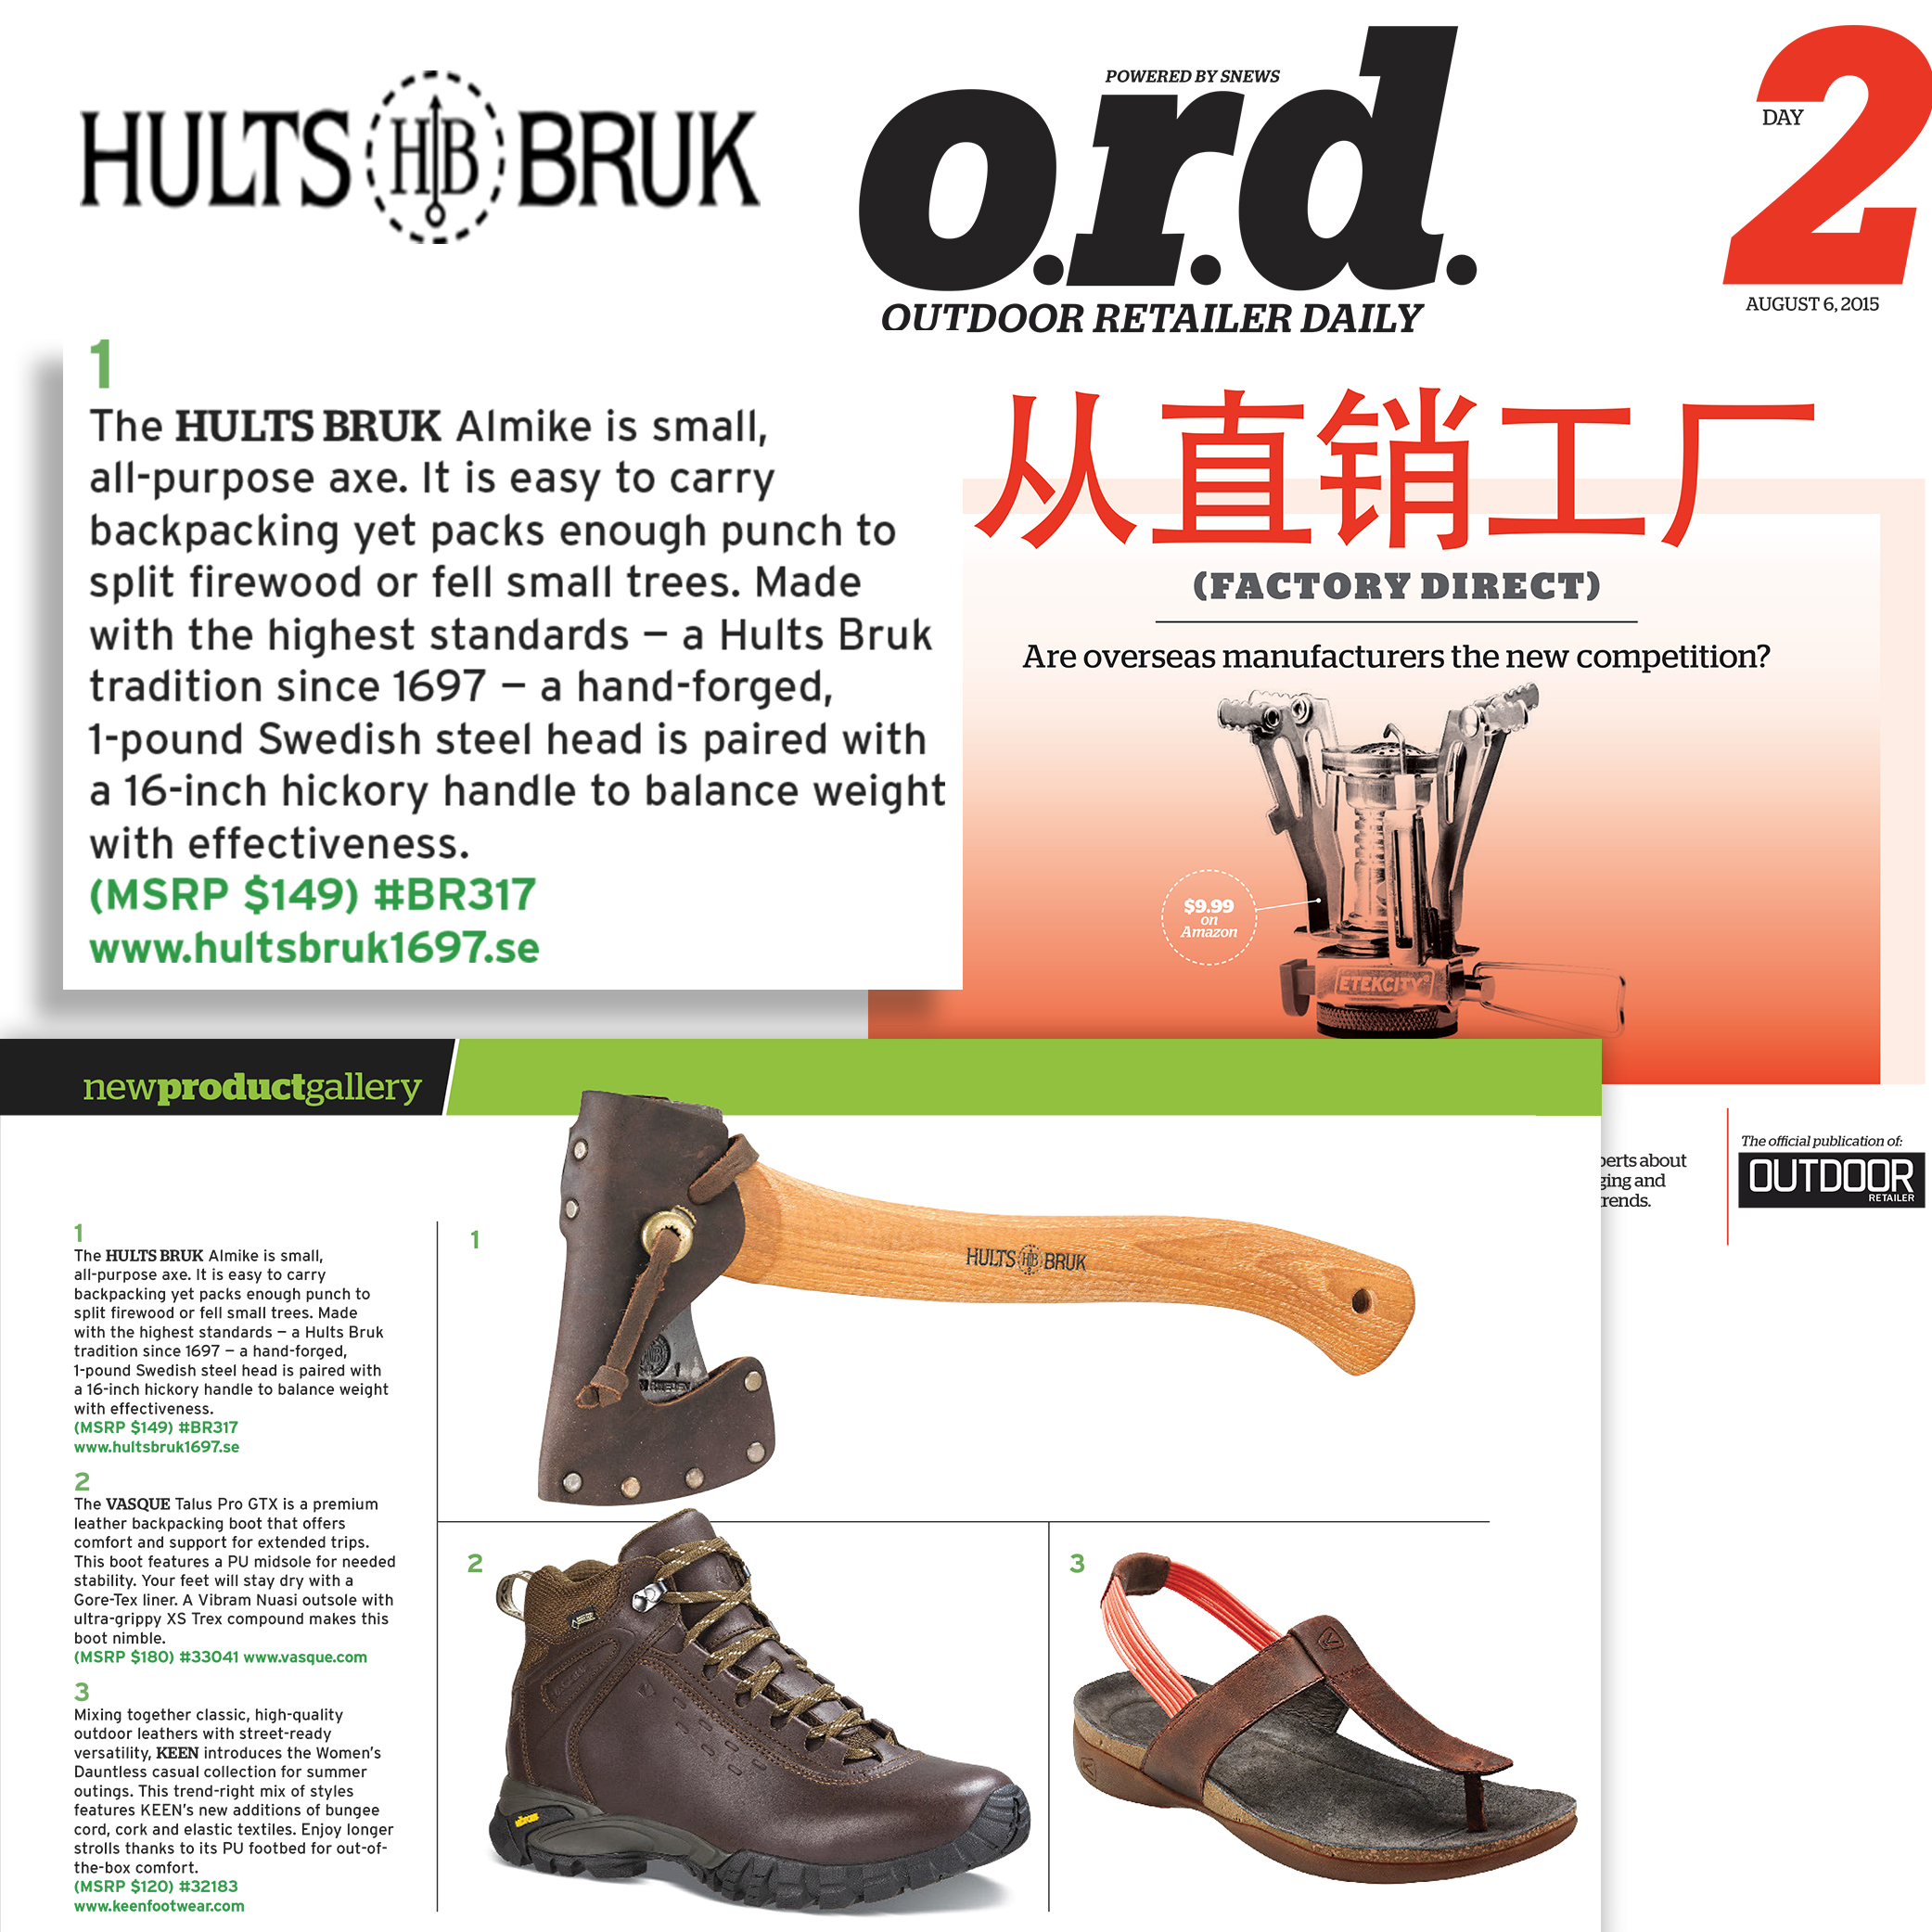 The Hults Bruk's Almike Gets Featured in OR Daily